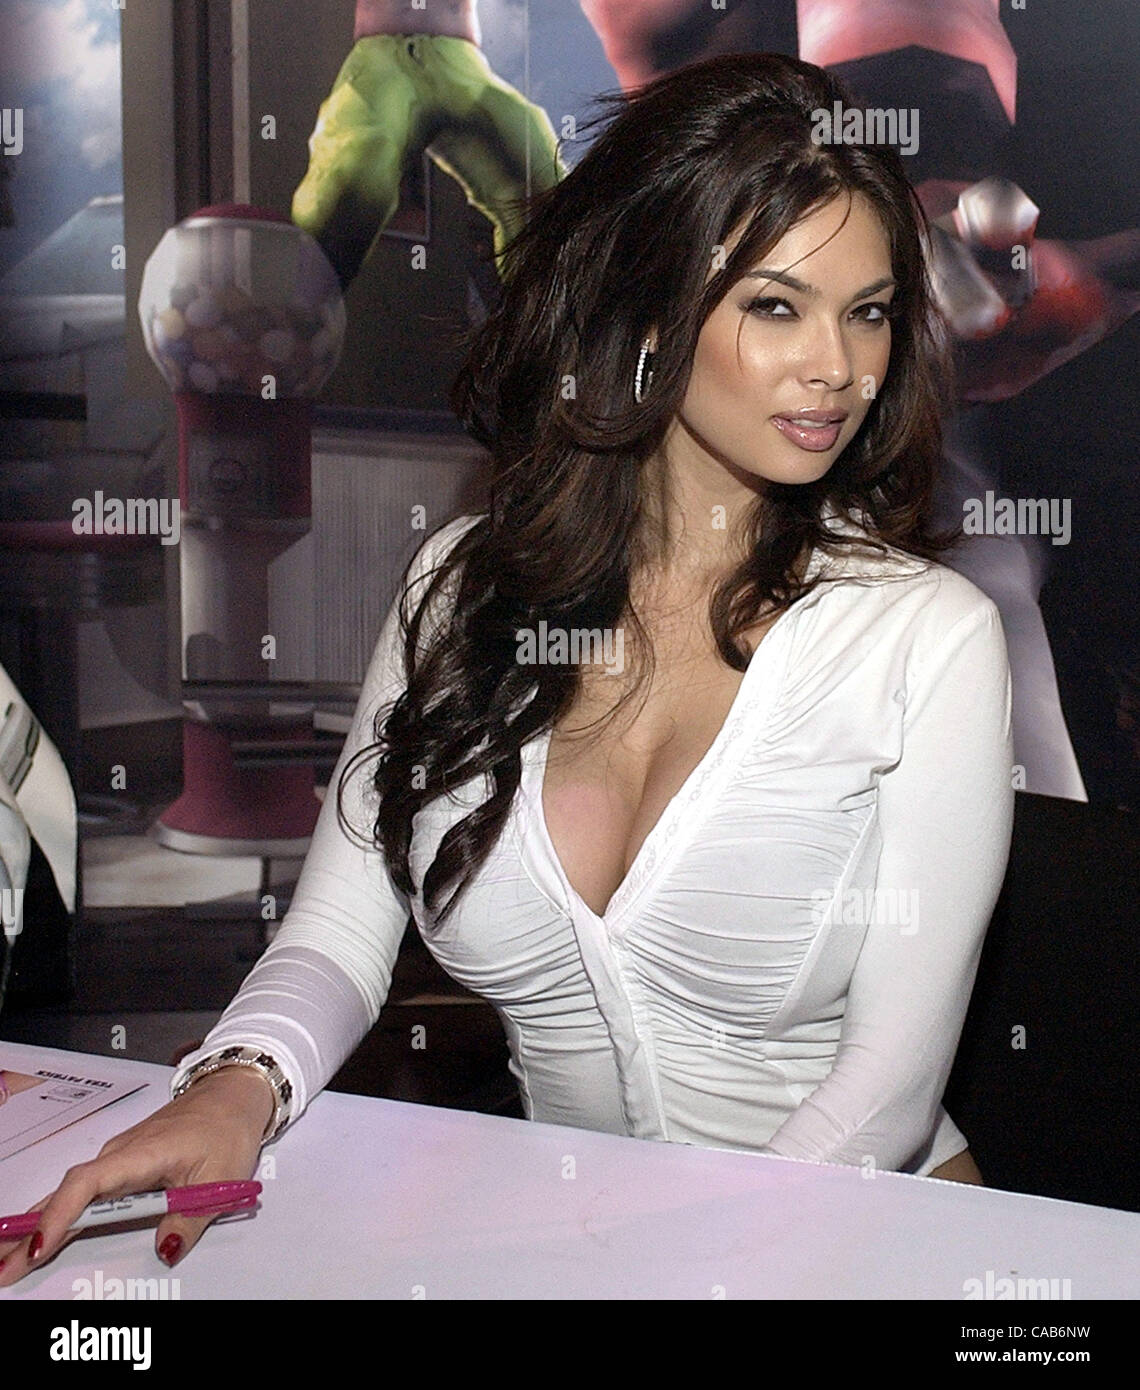 May 12 2004 Los Angeles Ca Usa Adult Film Star Tera Patrick At The Eidos Booth At E3 The Electronic Entertainment Expo